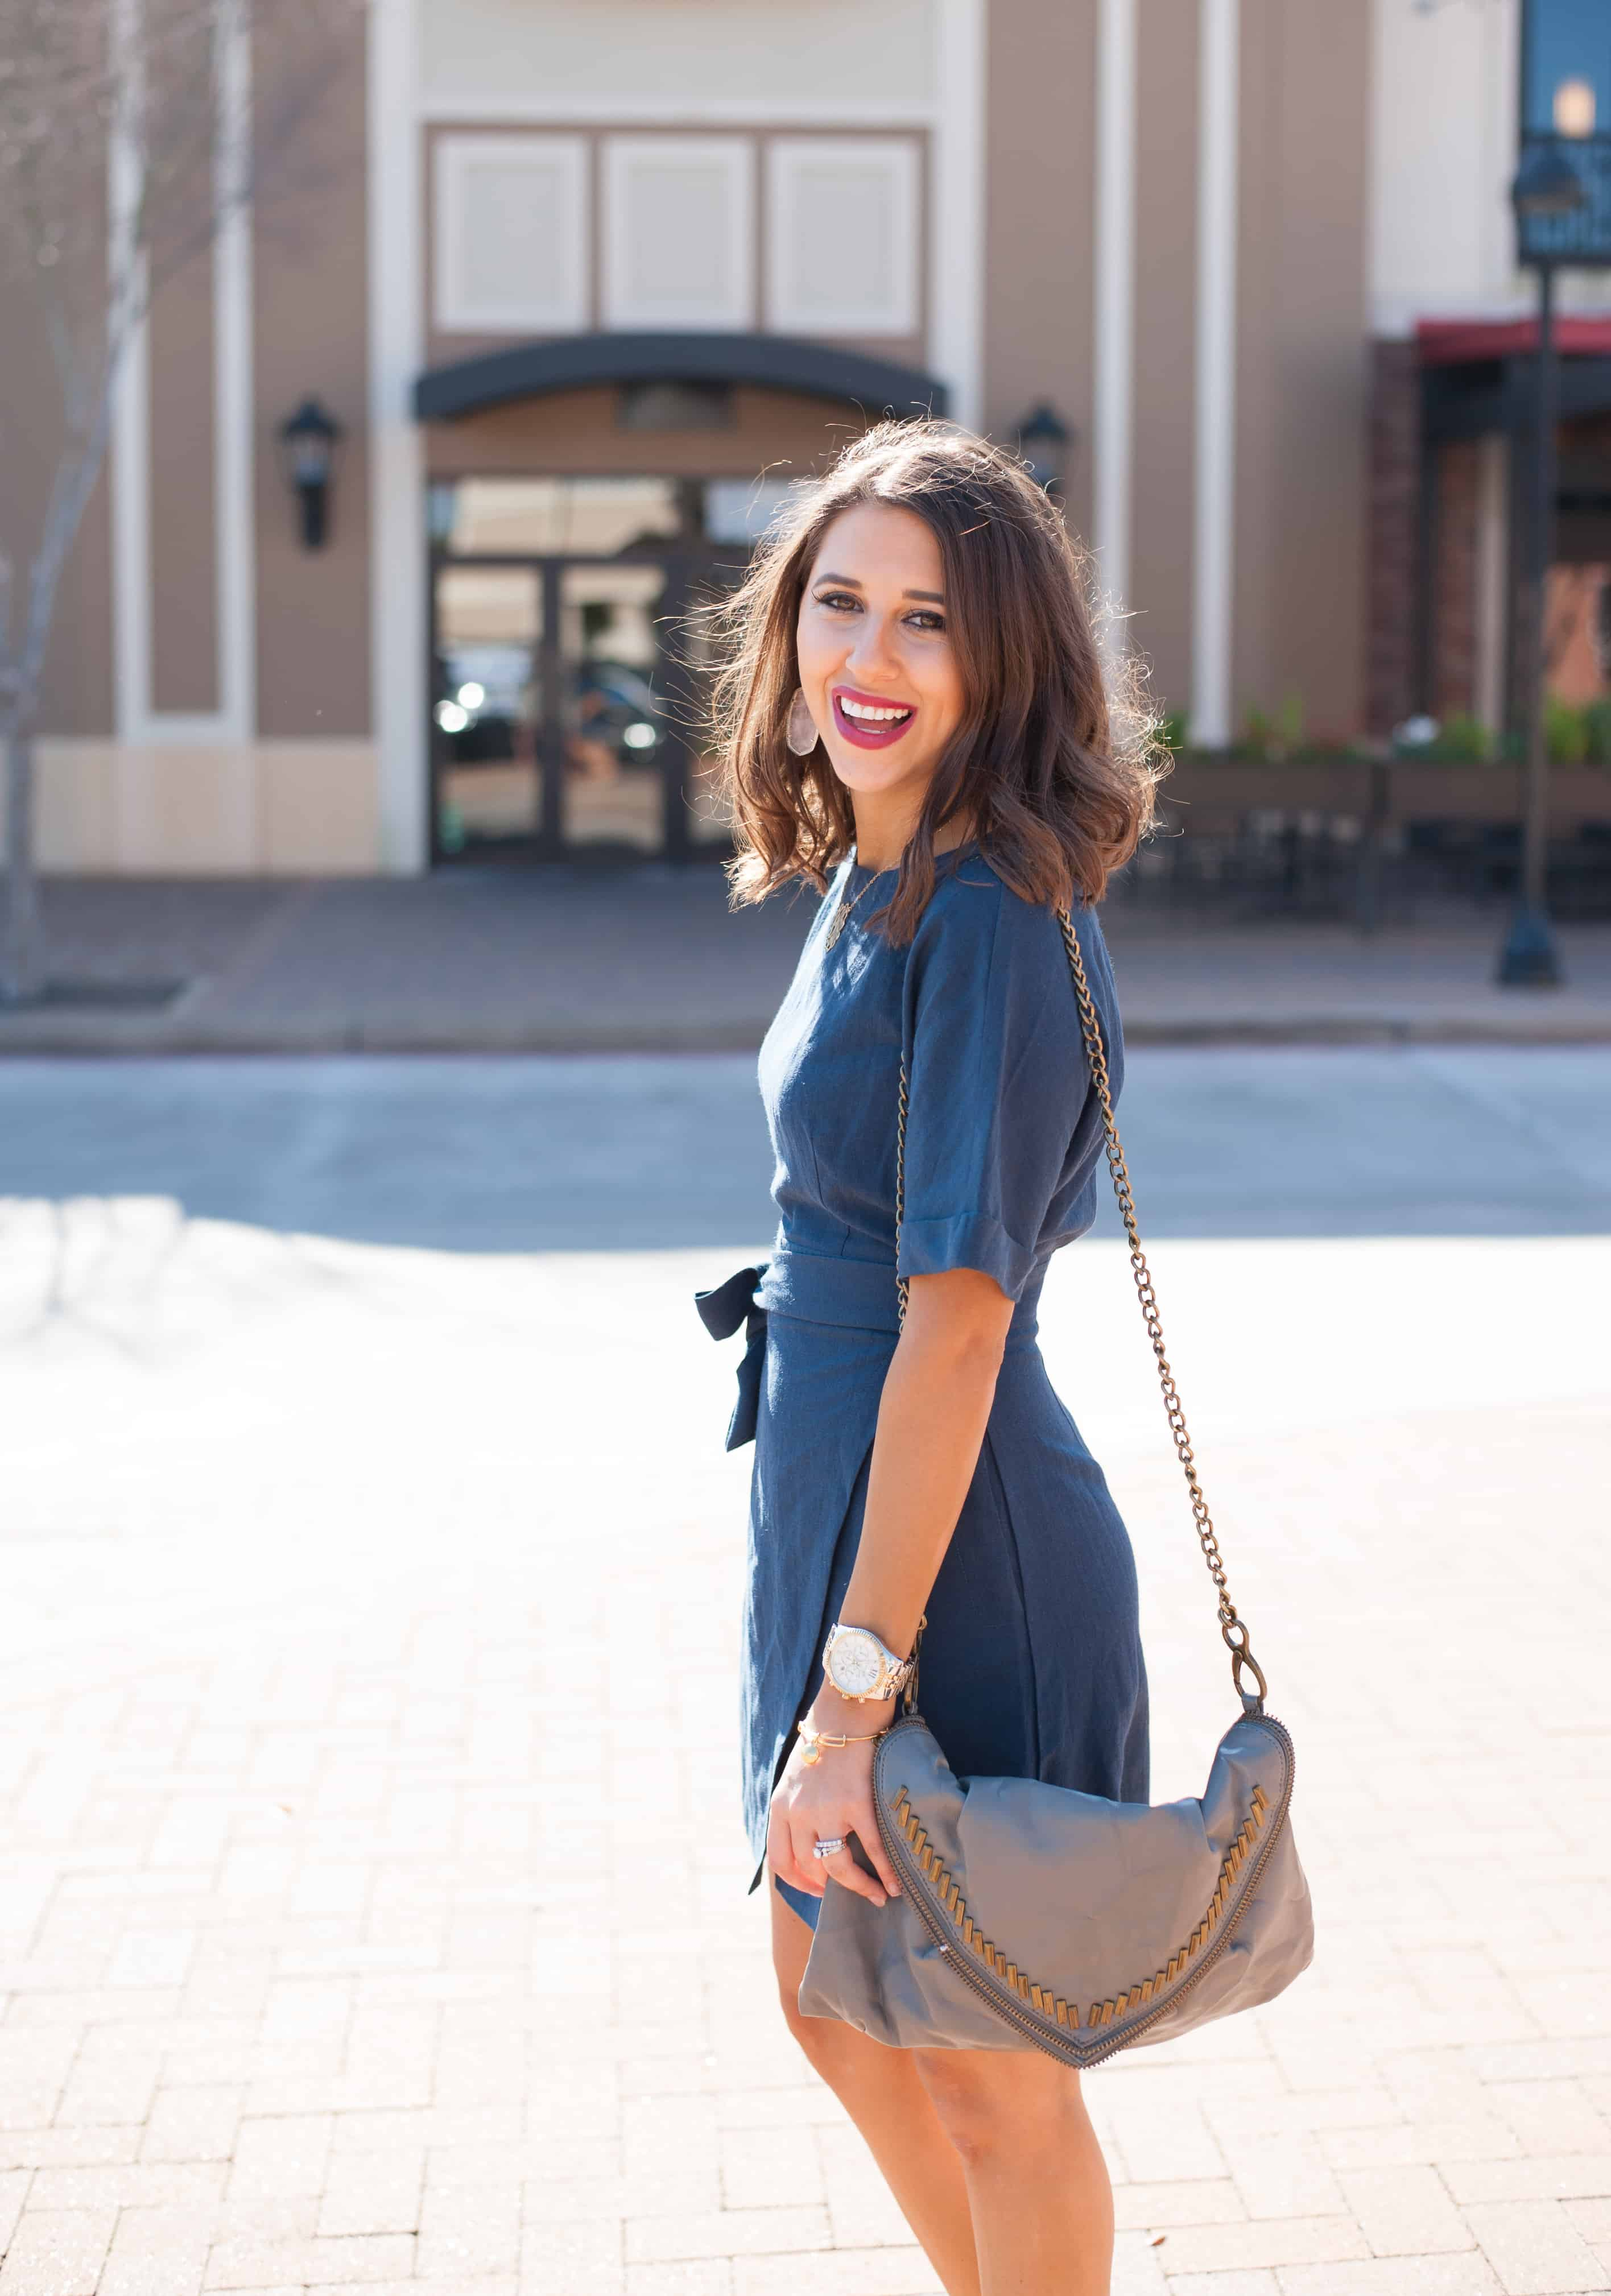 dress_up_buttercup_dede_raad_fashion_blogger_houston (8 of 15)